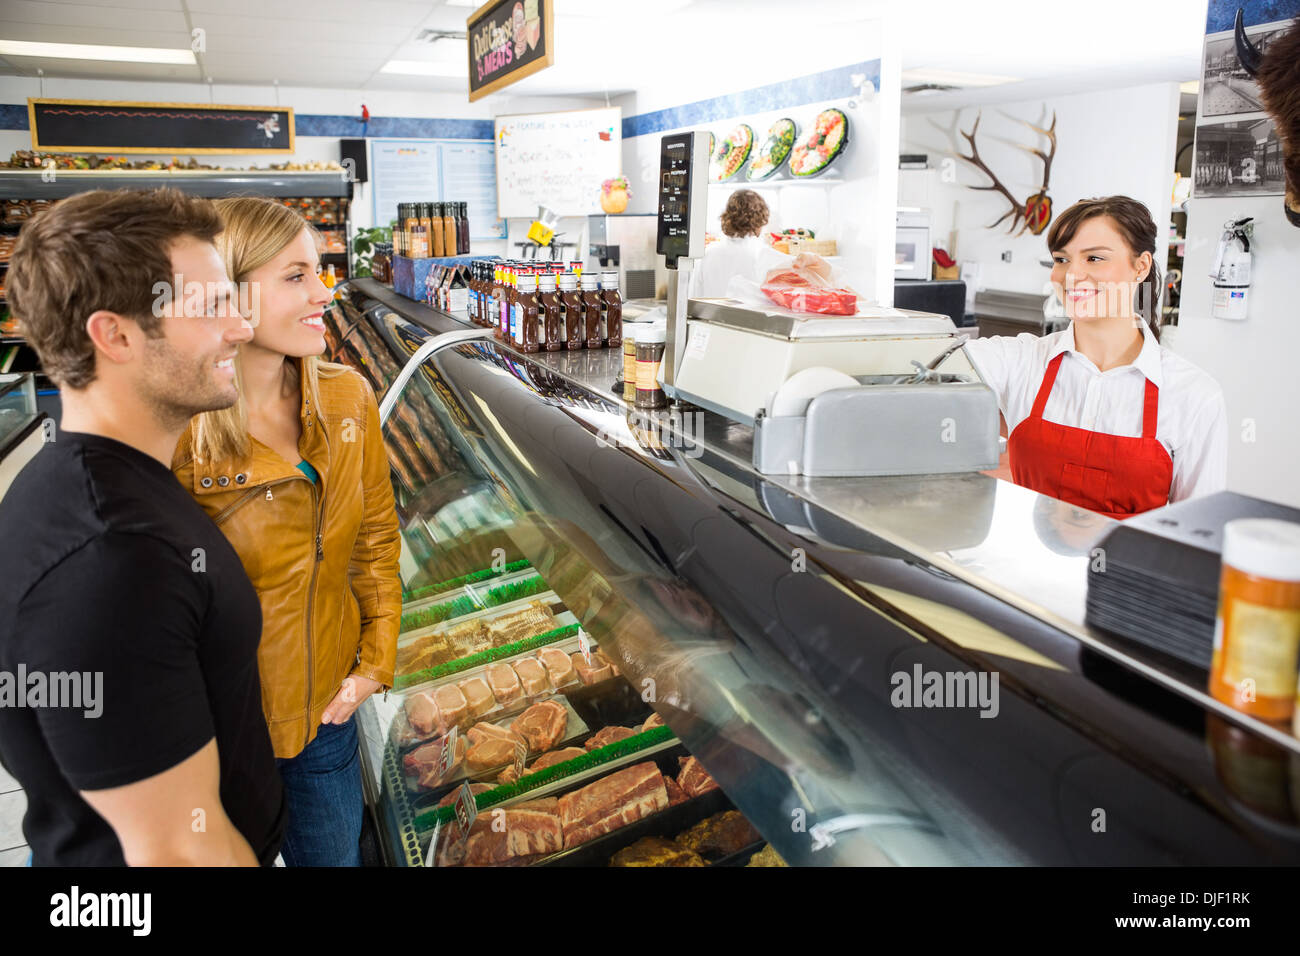 Saleswoman Attending Customers At Butcher's Shop - Stock Image